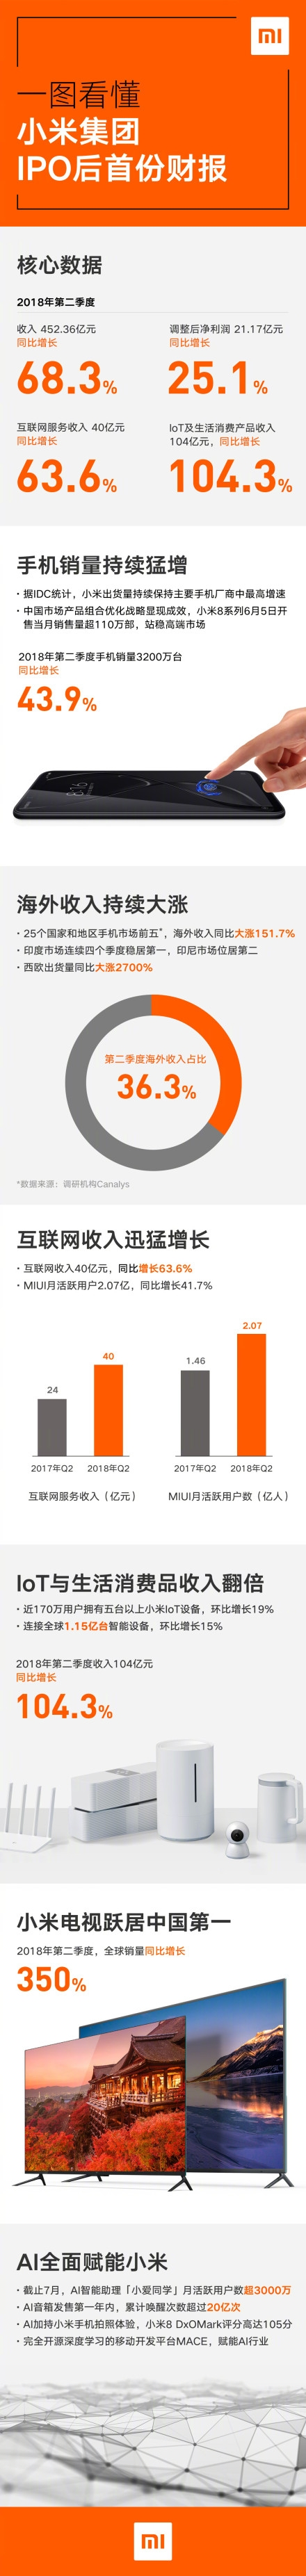 Xiaomi announced its first financial report after listing: Q2 revenue surged 68.3% year-on-year